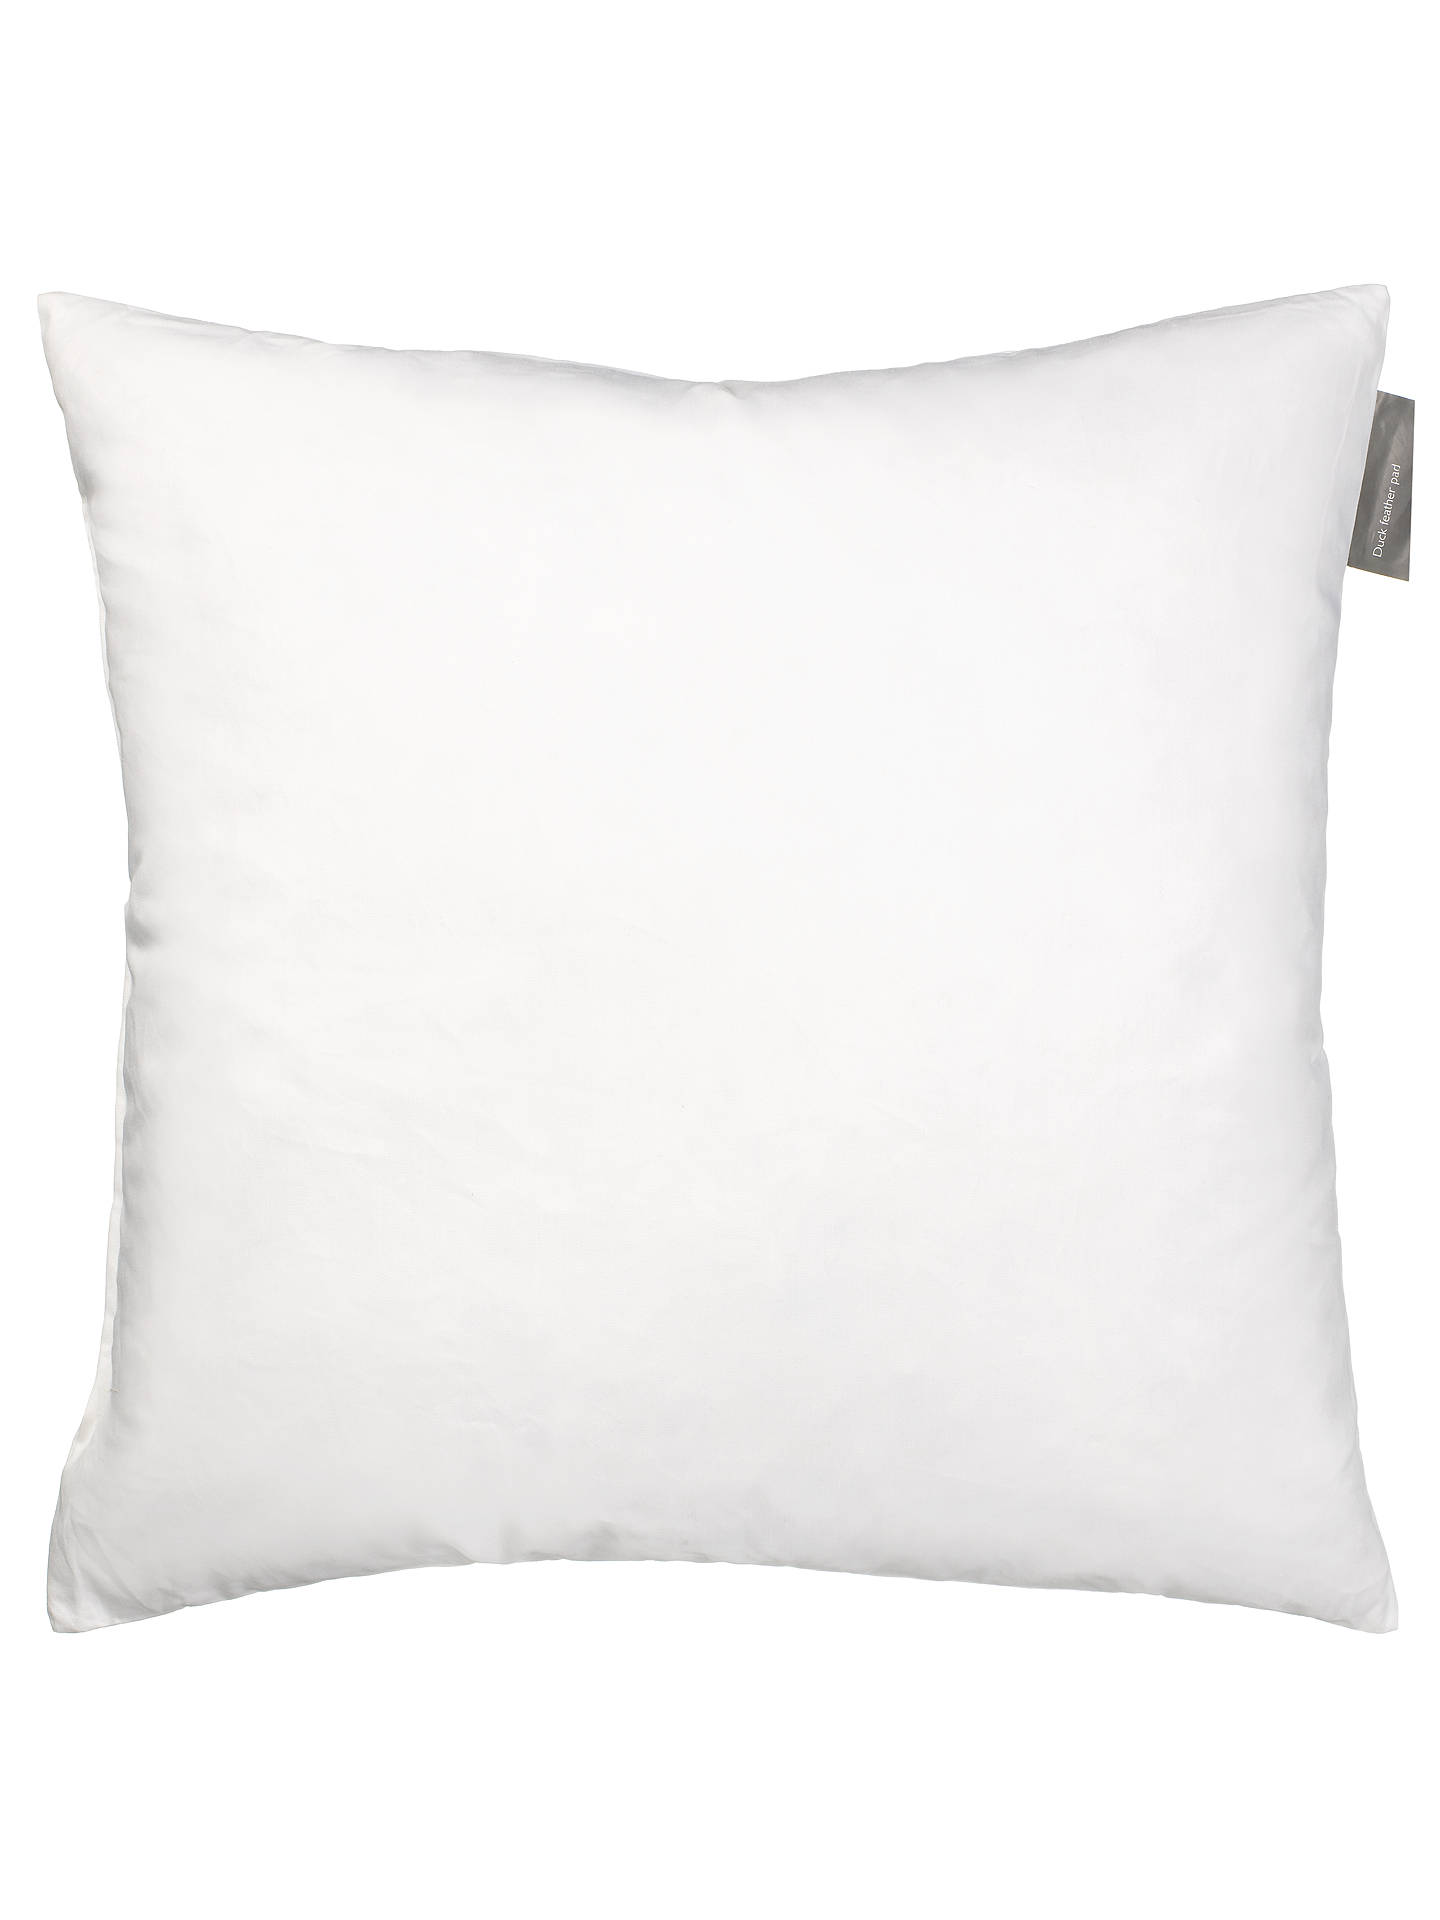 BuyJohn Lewis & Partners Duck Feather Cushion Pad, 30 x 30cm Online at johnlewis.com